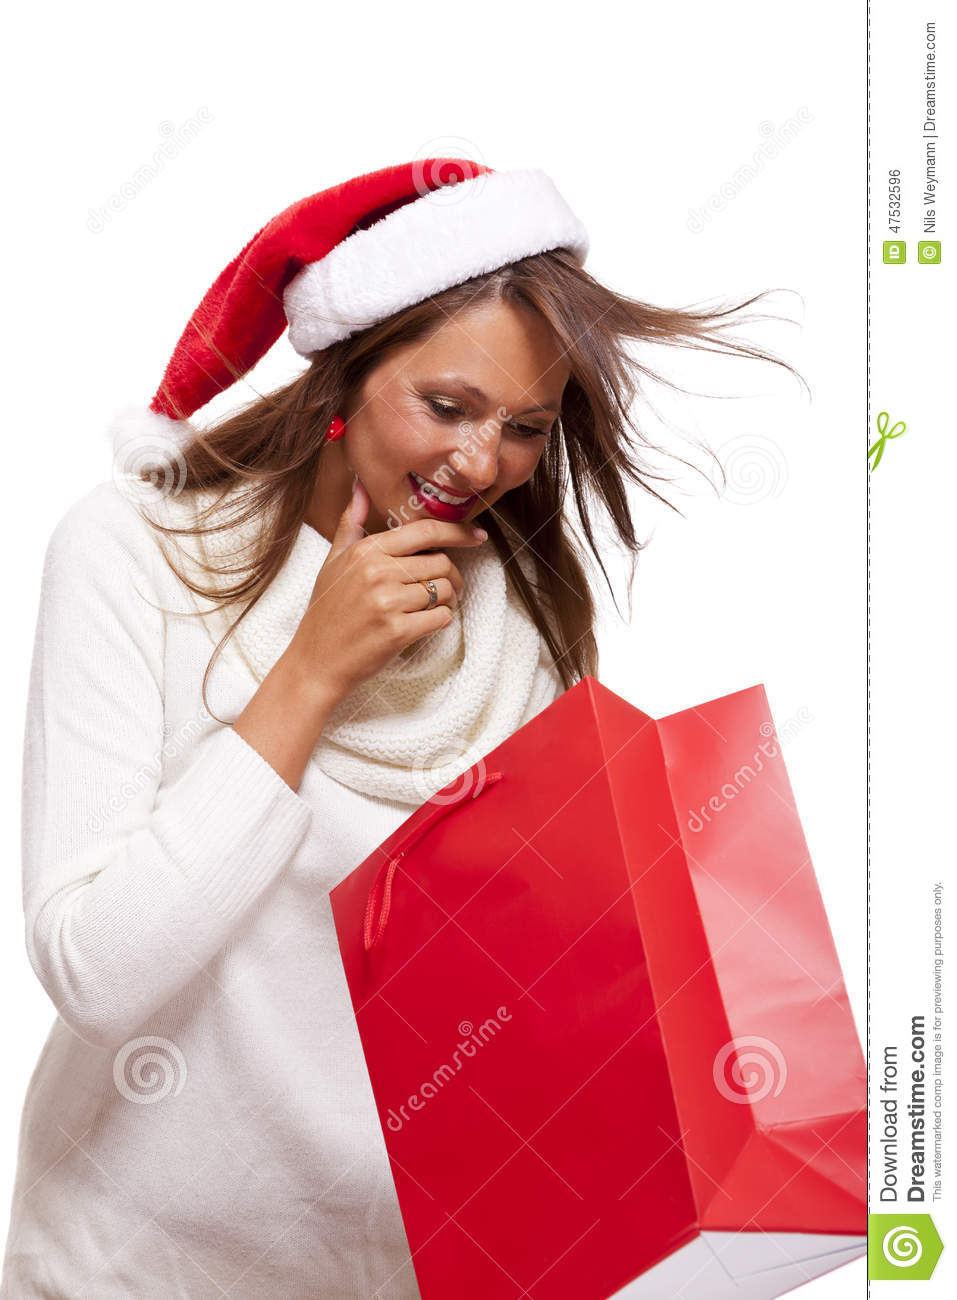 836ee36b021b5 Happy vivacious Christmas shopper wearing a red Santa hat holding up a  colorful red shopping bag with a beautiful beaming smile